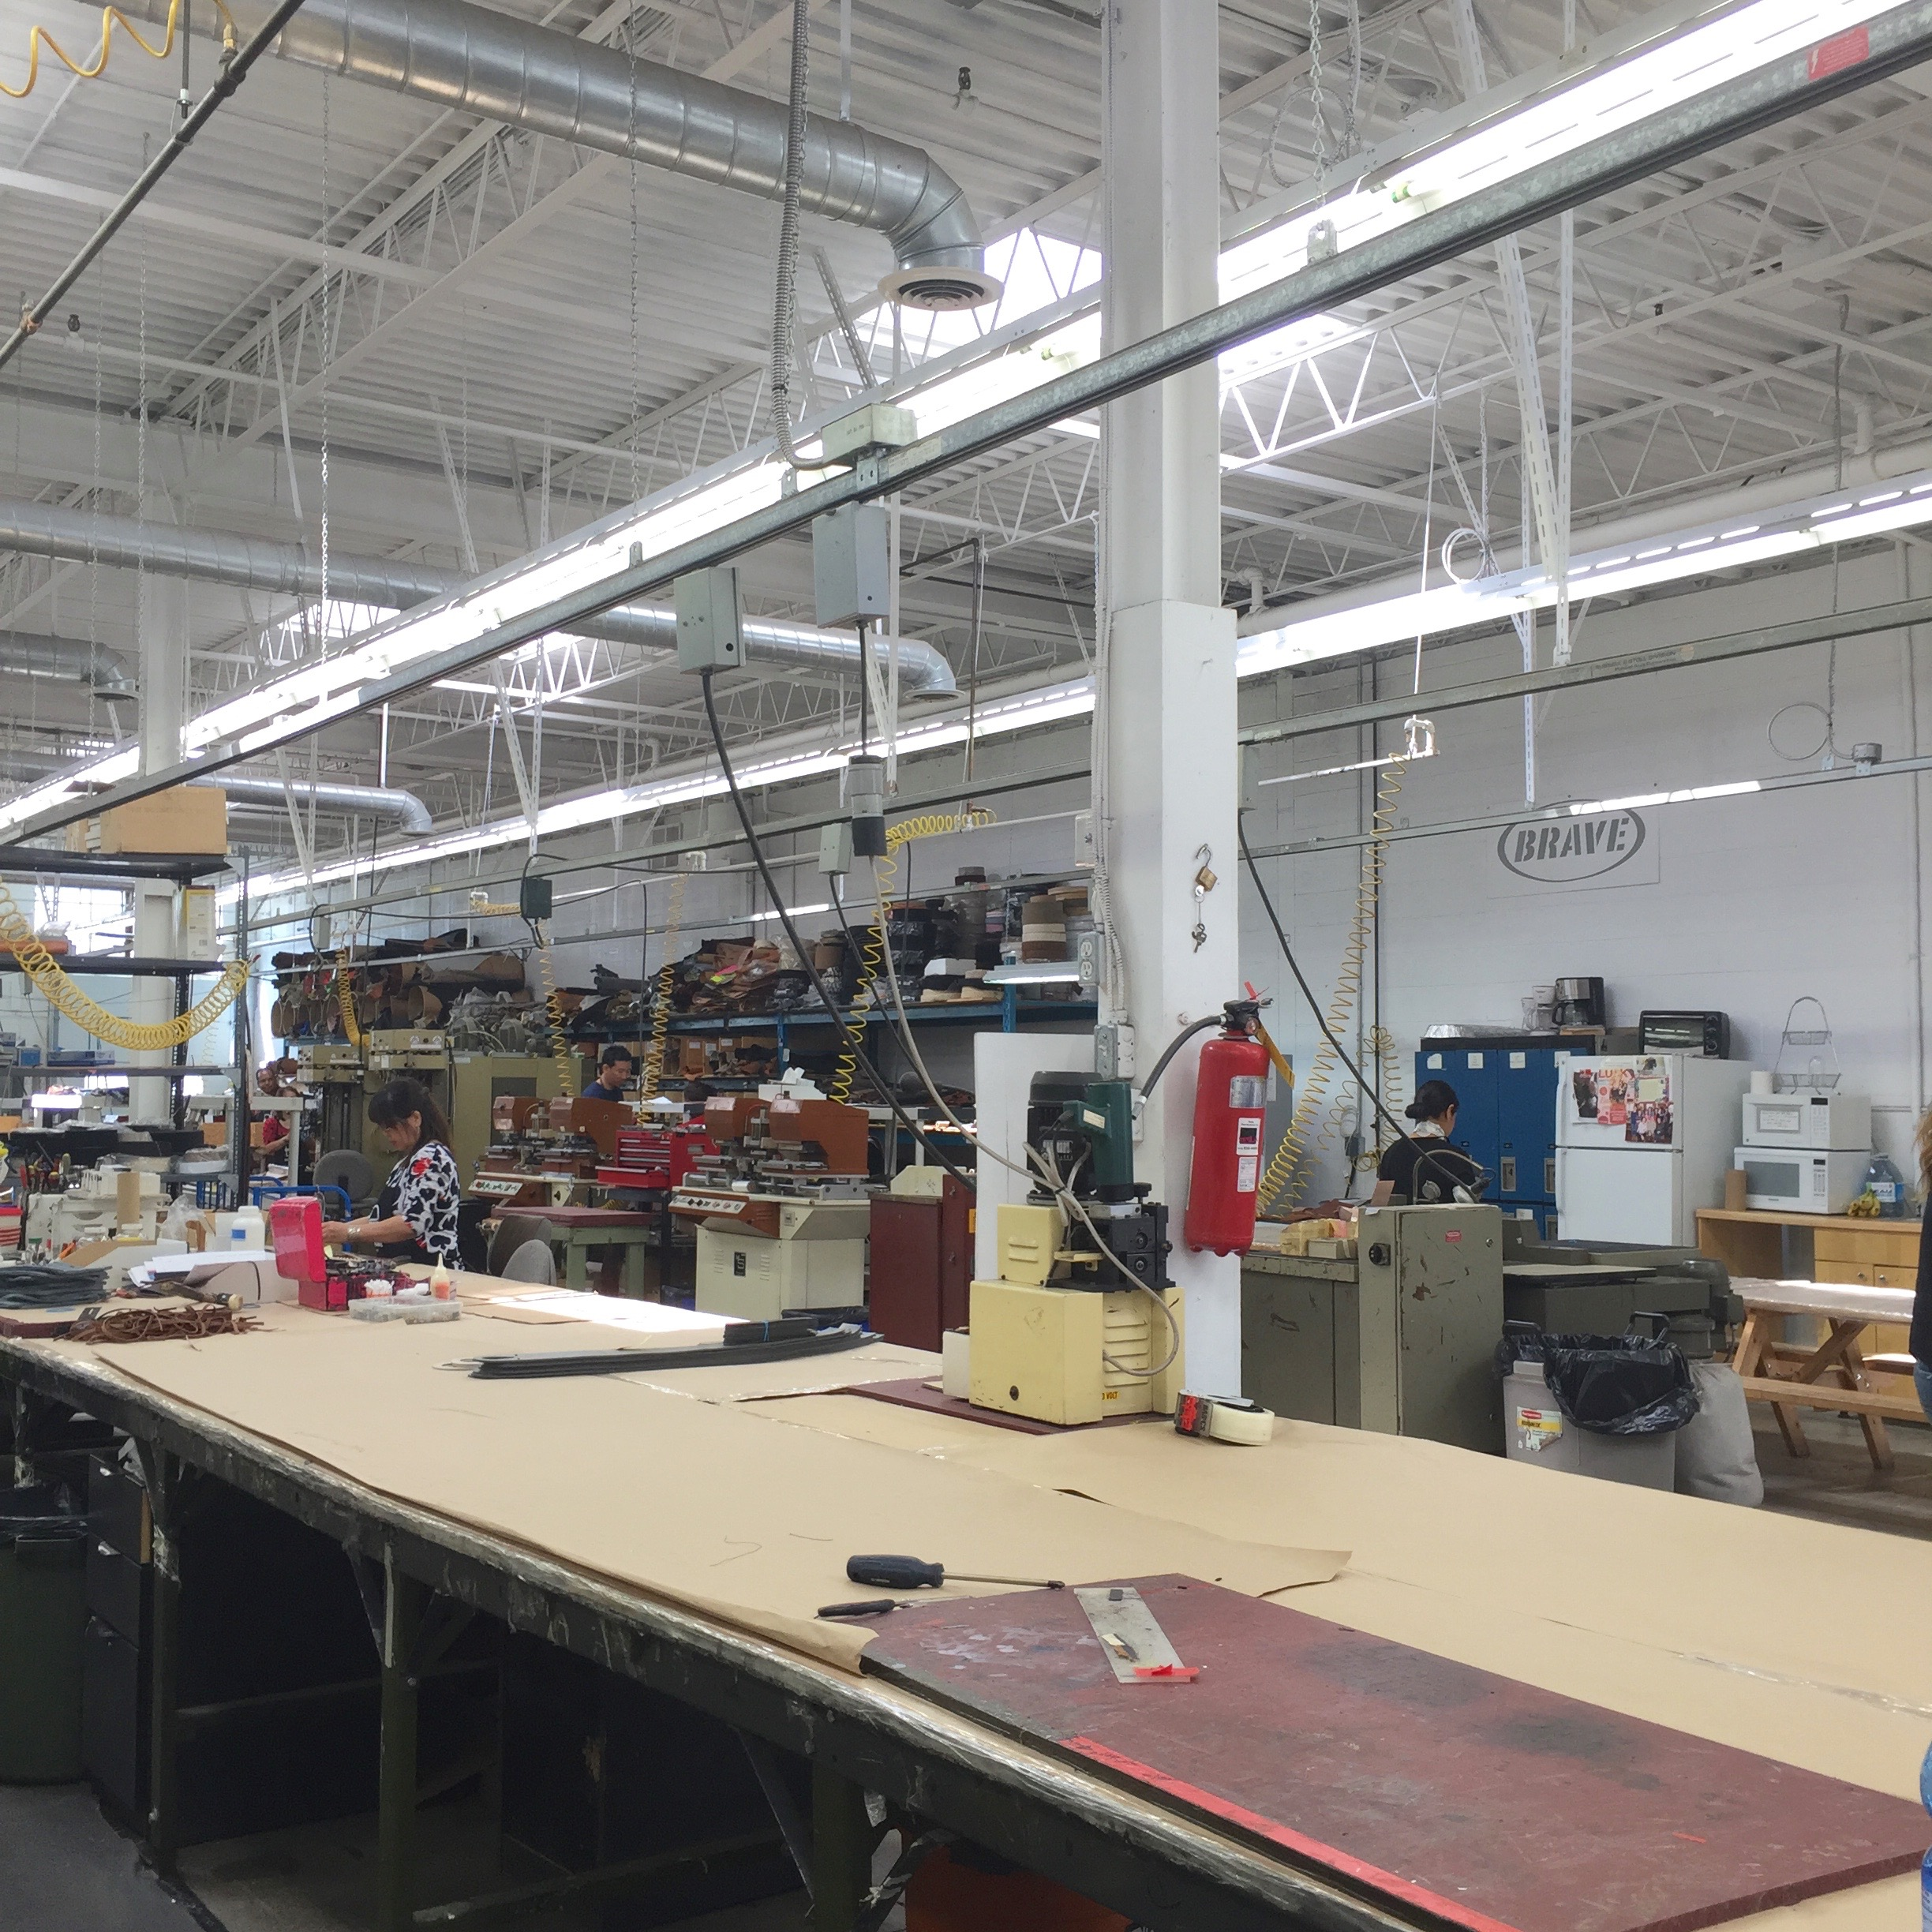 this is the other side of the factory.